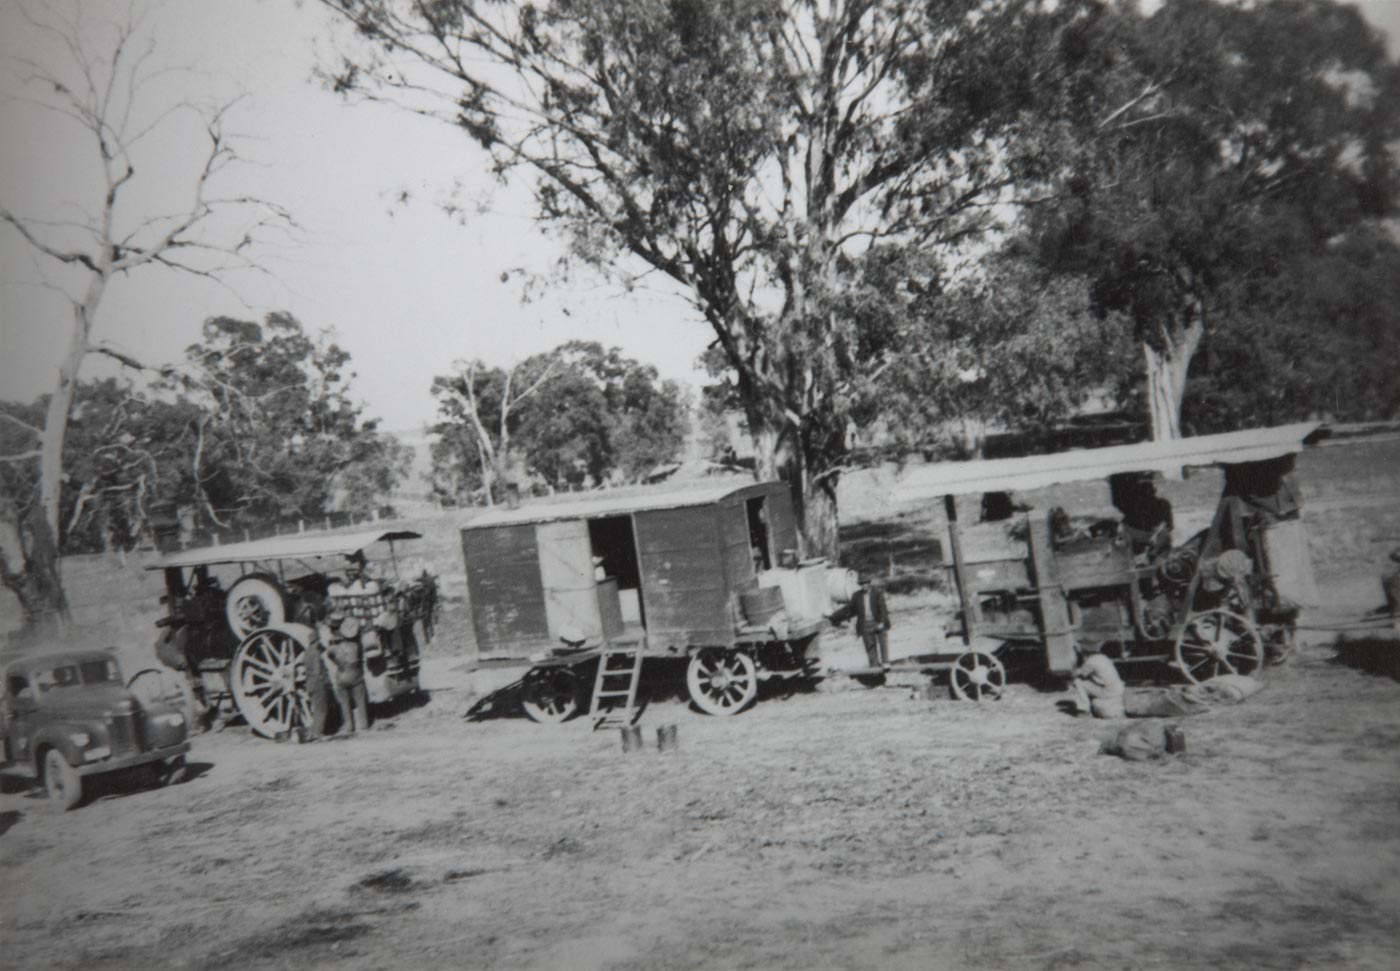 A train of steam-powered vehicles near gum trees. - click to view larger image